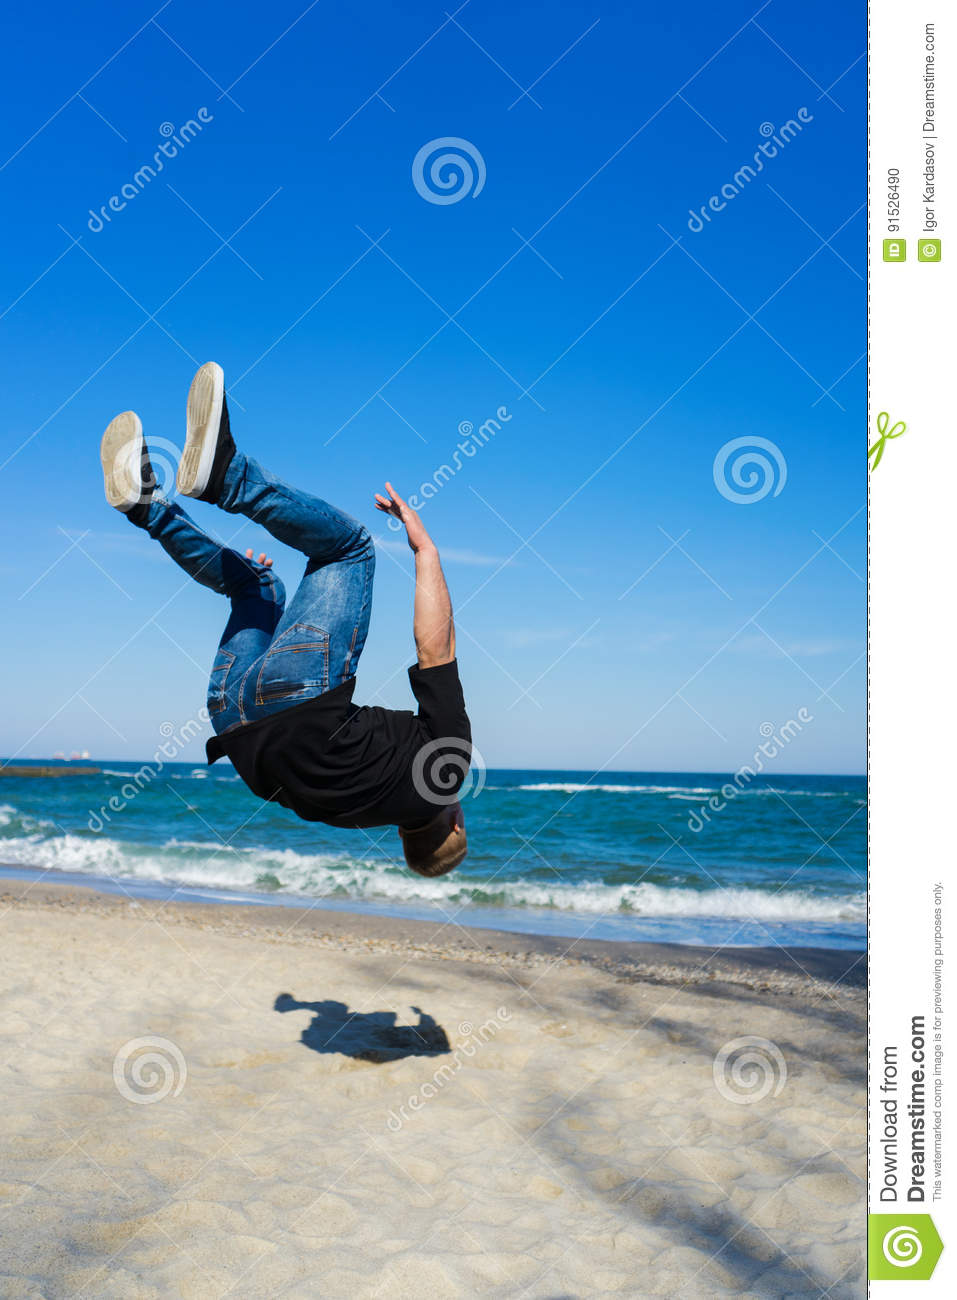 ae8d7b5655fd23 Portrait of young parkour man doing flip or somersault on the beach.  Freezed moment - finishing of flip